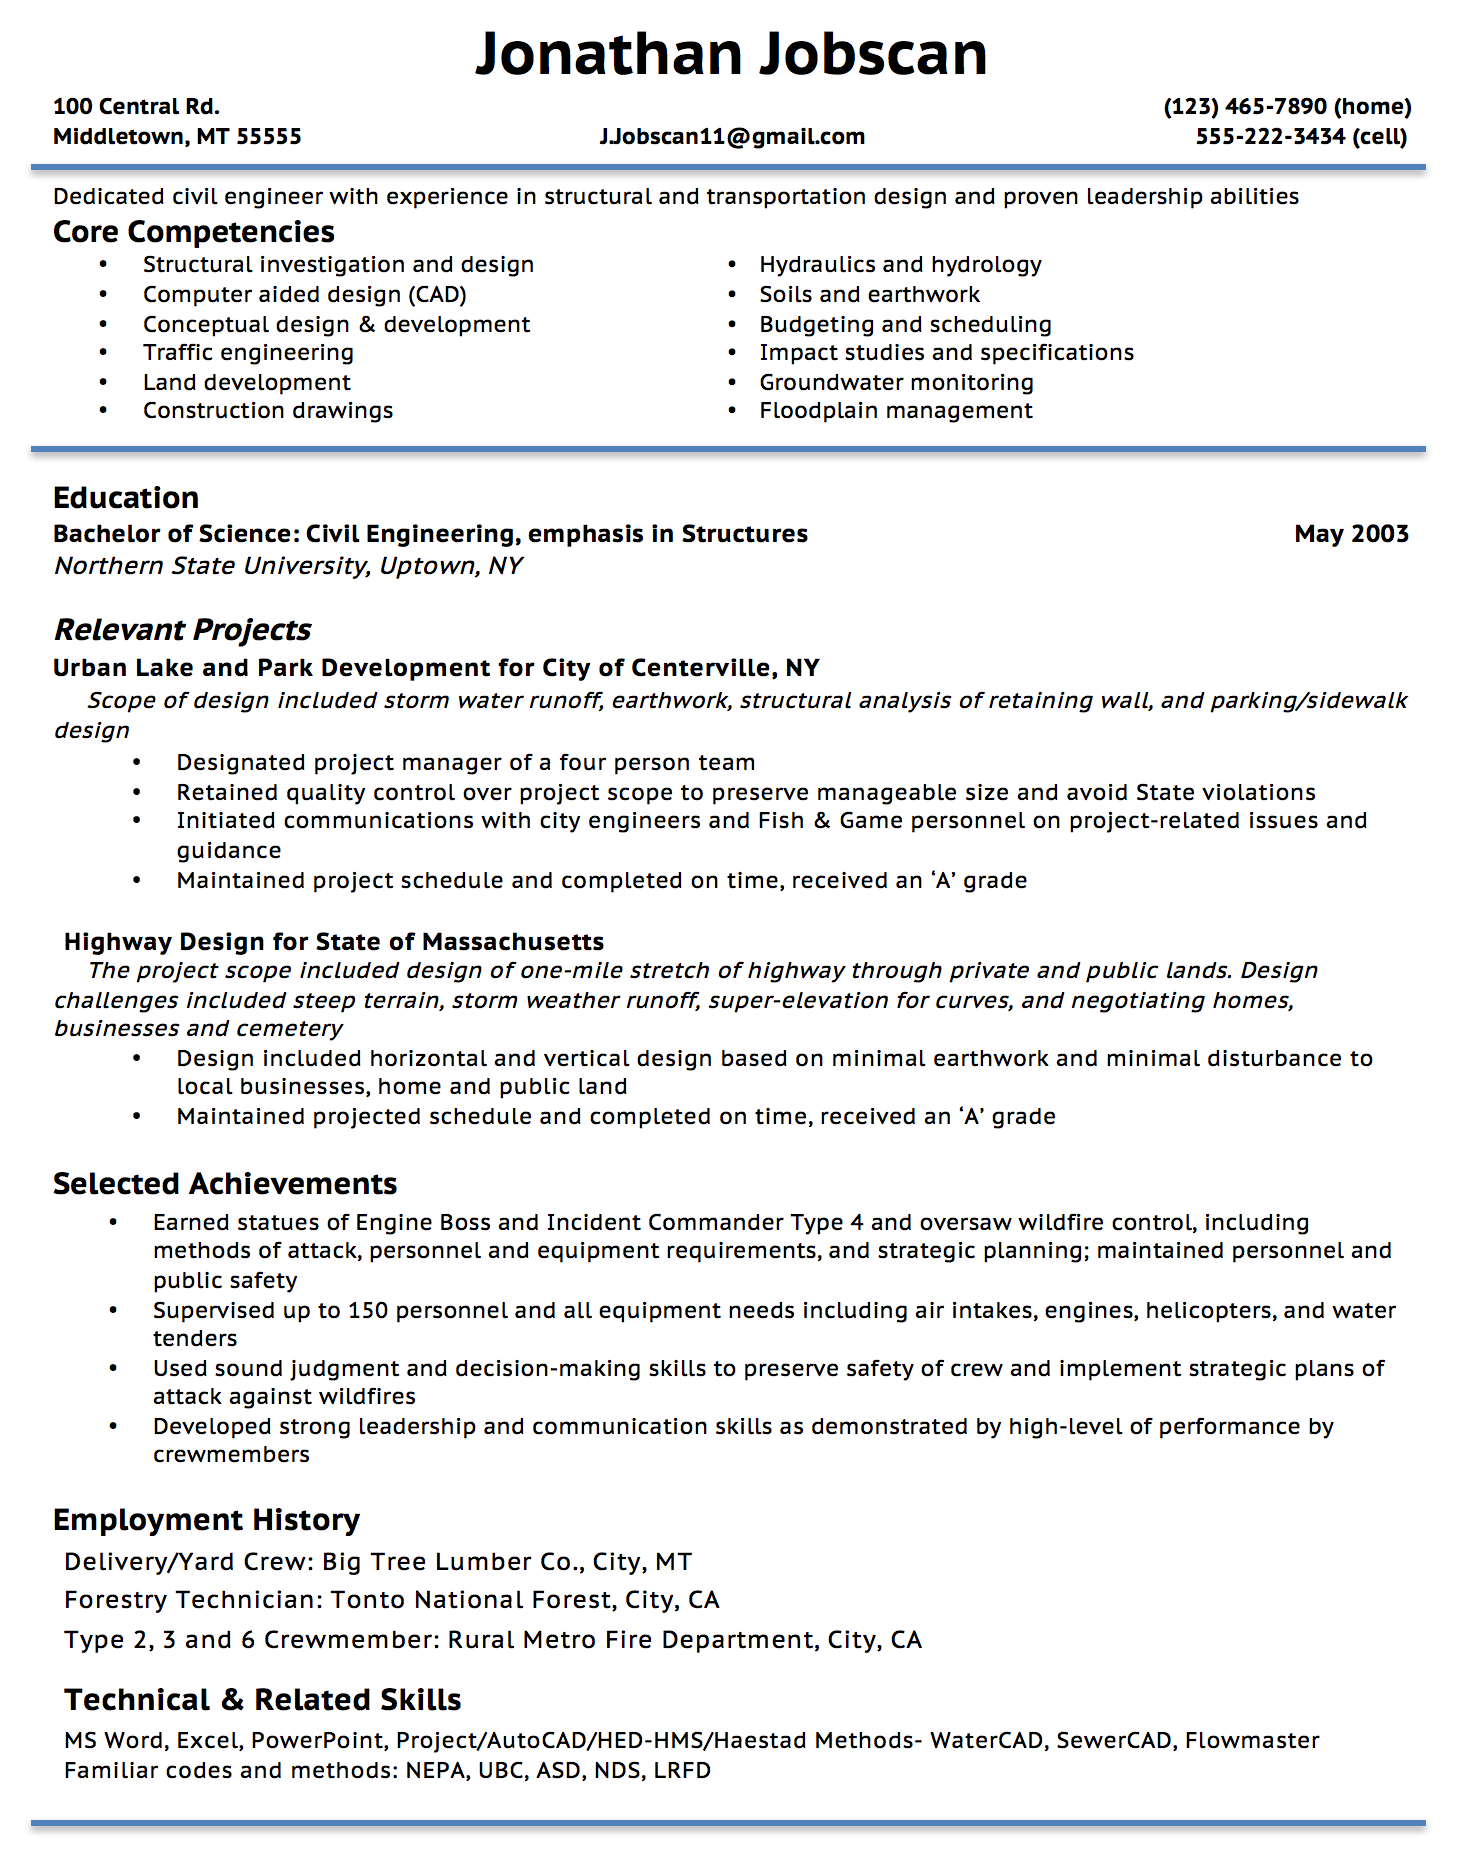 Opposenewapstandardsus  Sweet Resume Writing Guide  Jobscan With Inspiring Example Of A Functional Resume Format With Comely Free Resume Template Also Professional Resume In Addition Resume Help And Customer Service Resume As Well As Sample Resumes Additionally Resume Template From Jobscanco With Opposenewapstandardsus  Inspiring Resume Writing Guide  Jobscan With Comely Example Of A Functional Resume Format And Sweet Free Resume Template Also Professional Resume In Addition Resume Help From Jobscanco